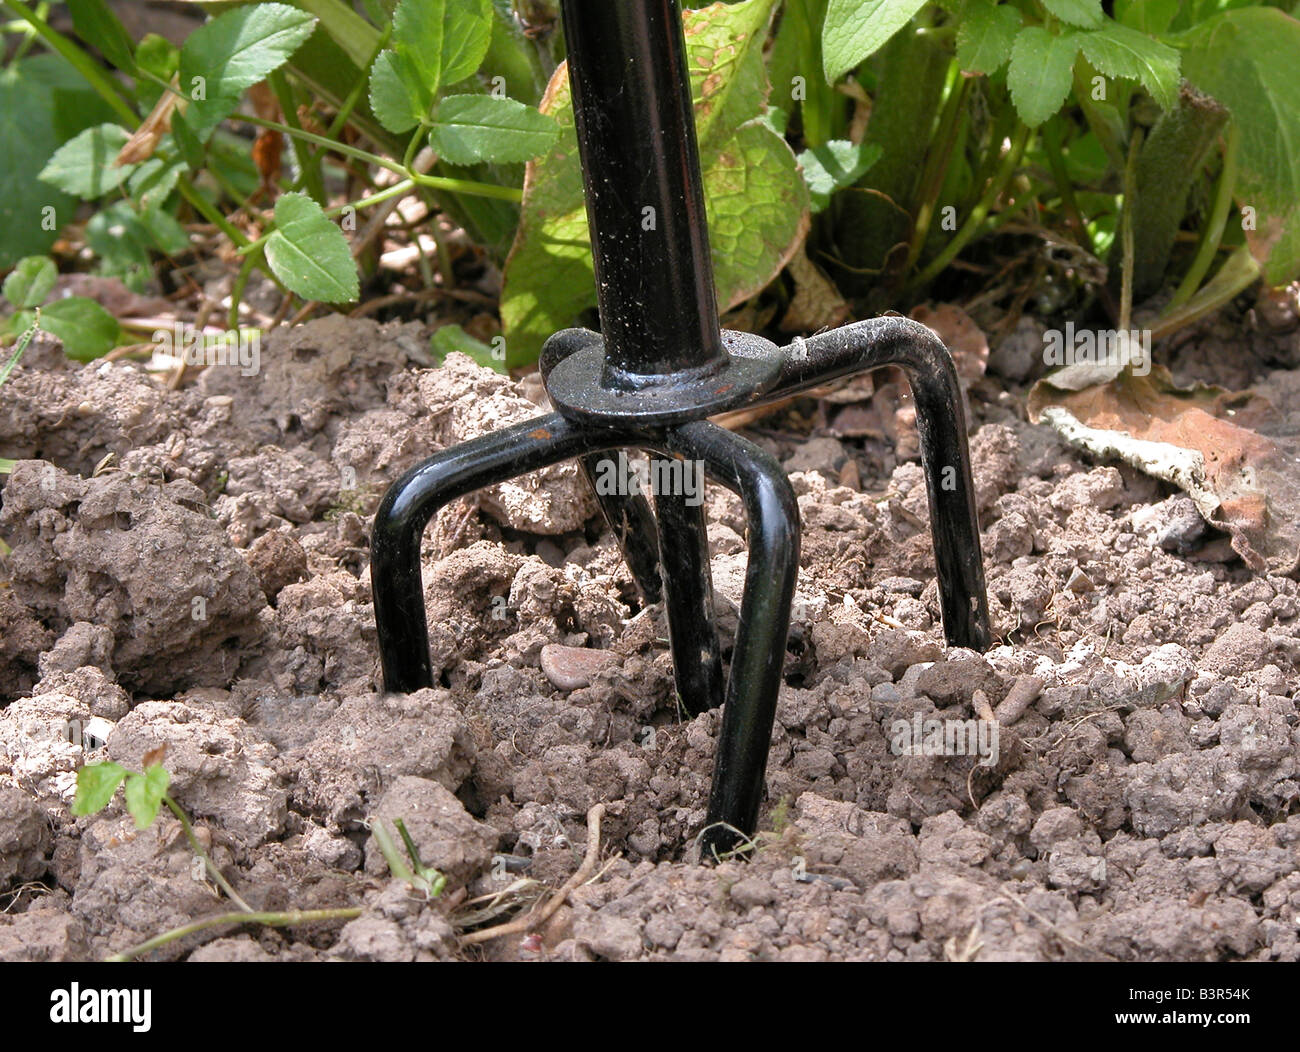 Hand Cultivator Garden Tool For Loosening U0026 Aerating The Soil, Dislodging  Weeds